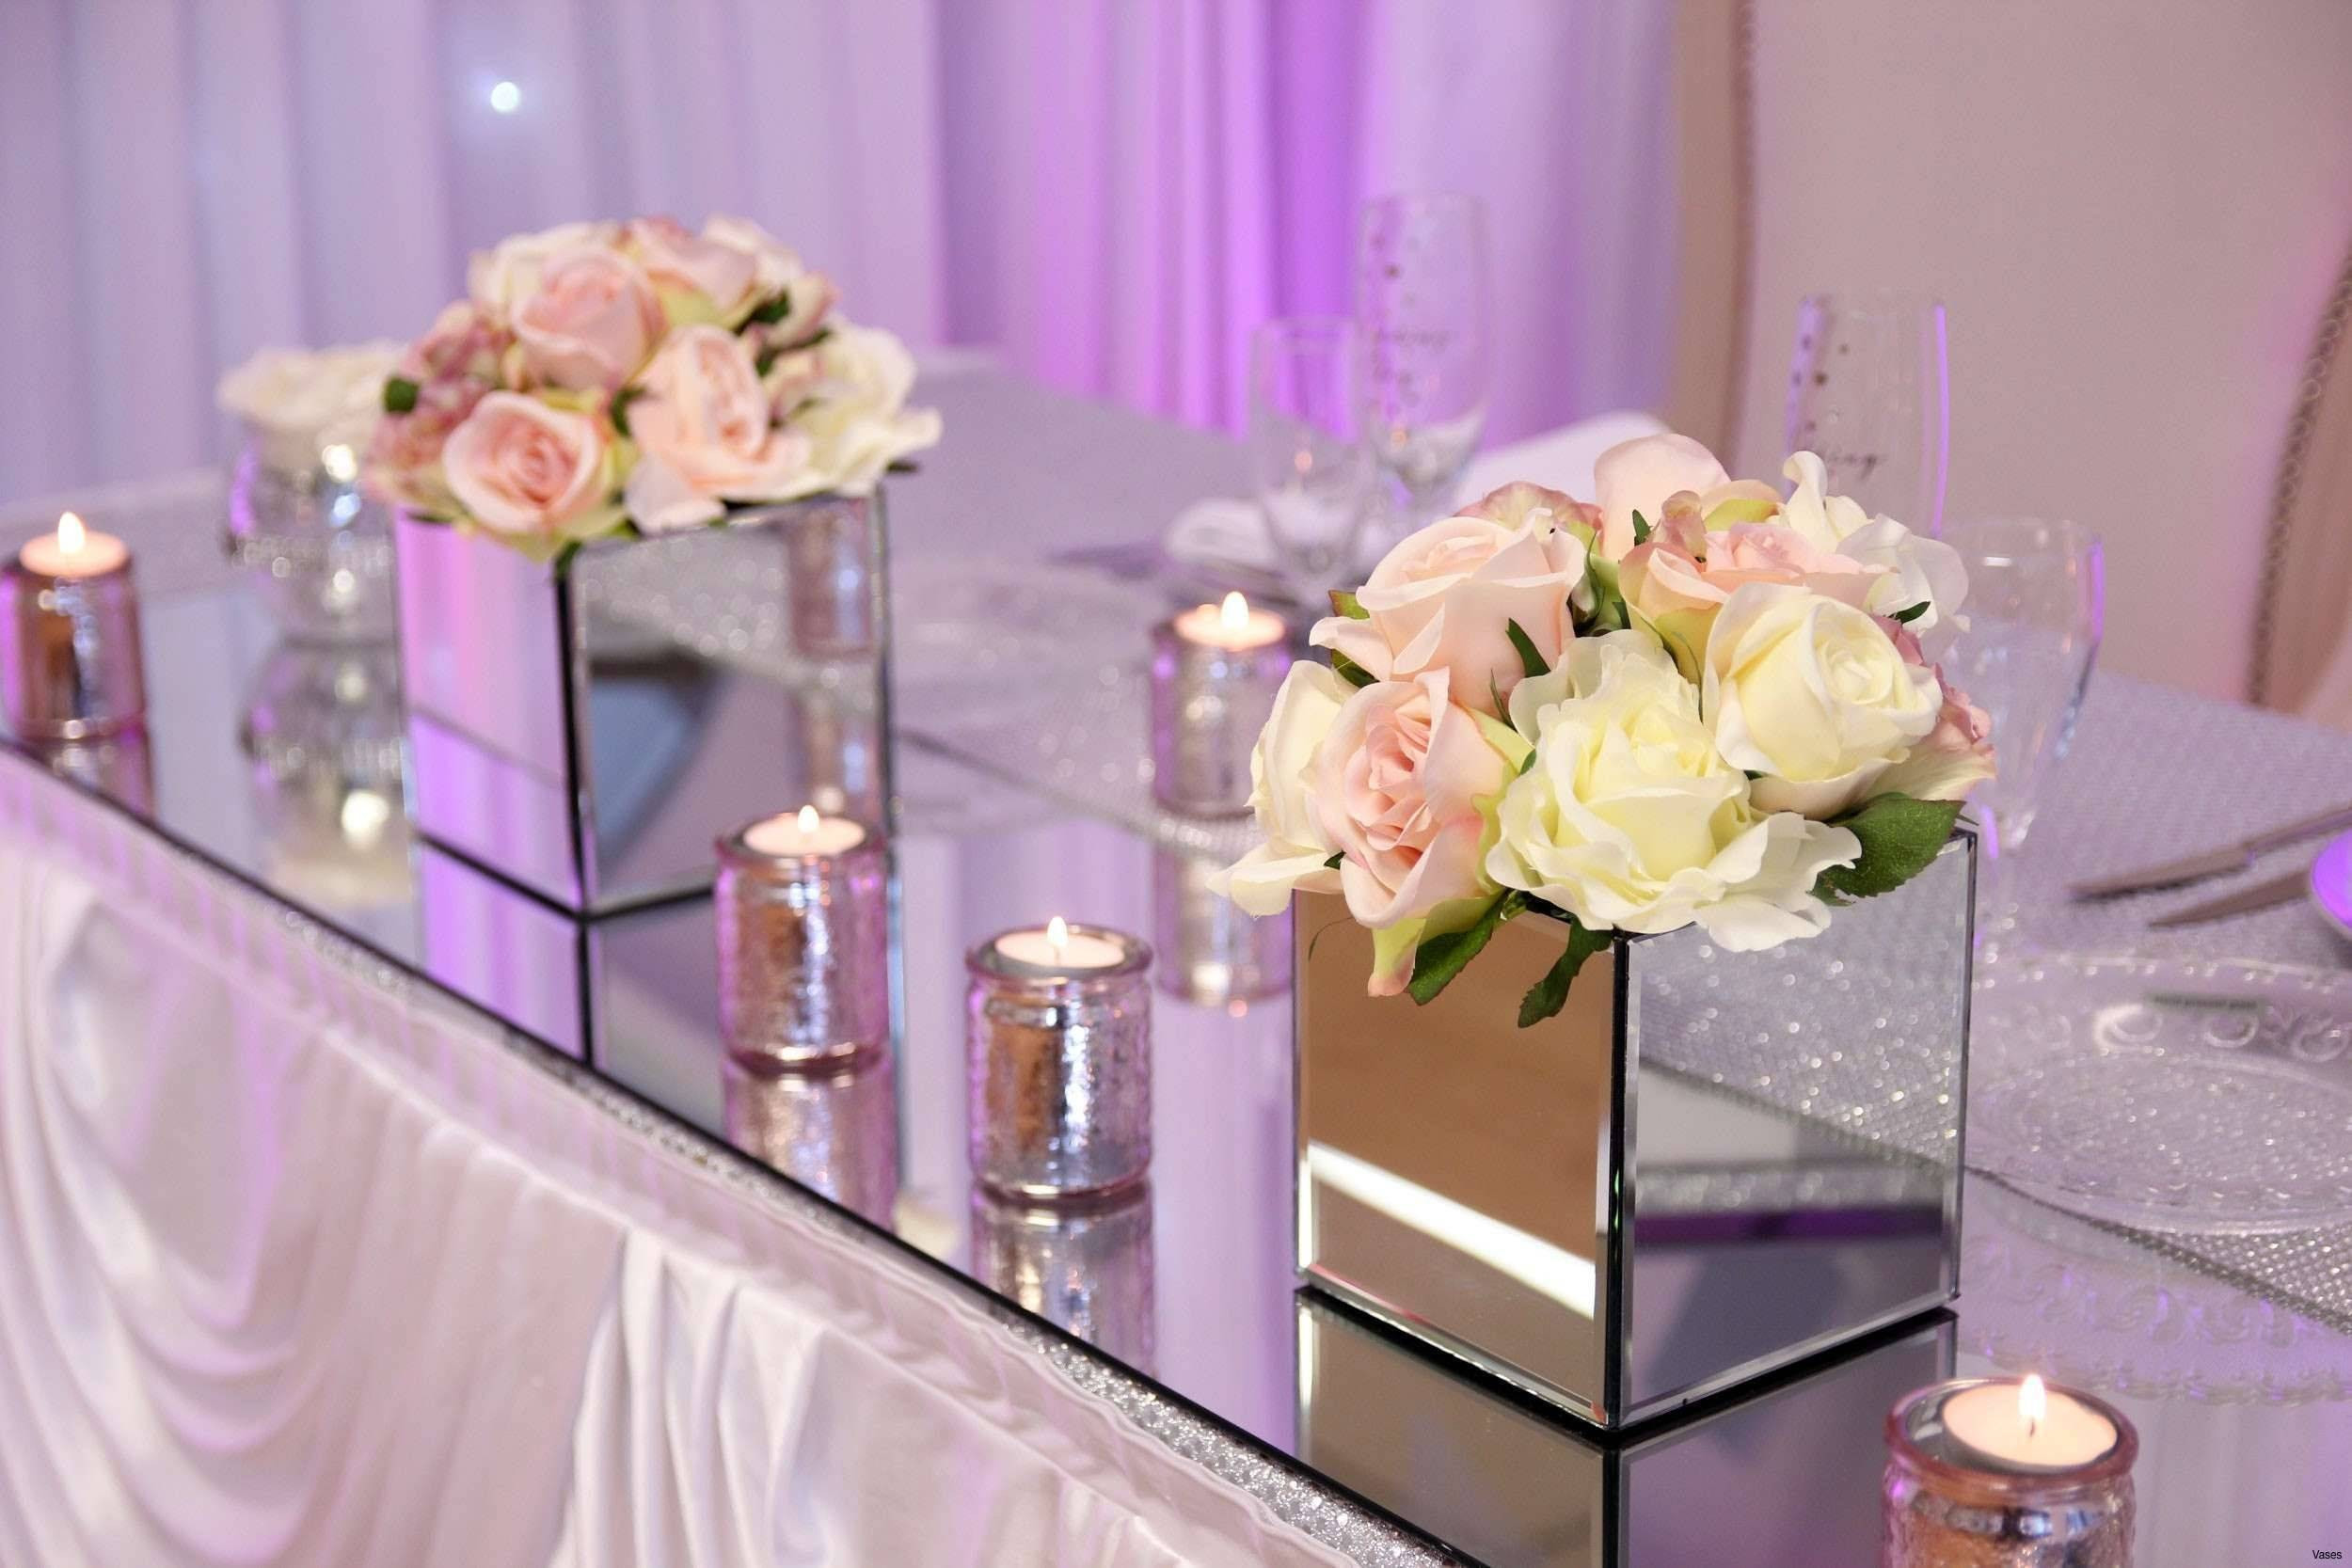 diy vase decor of diy wedding decor ideas awesome mirrored square vase 3h vases mirror throughout diy wedding decor ideas awesome mirrored square vase 3h vases mirror table decorationi 0d weddings of